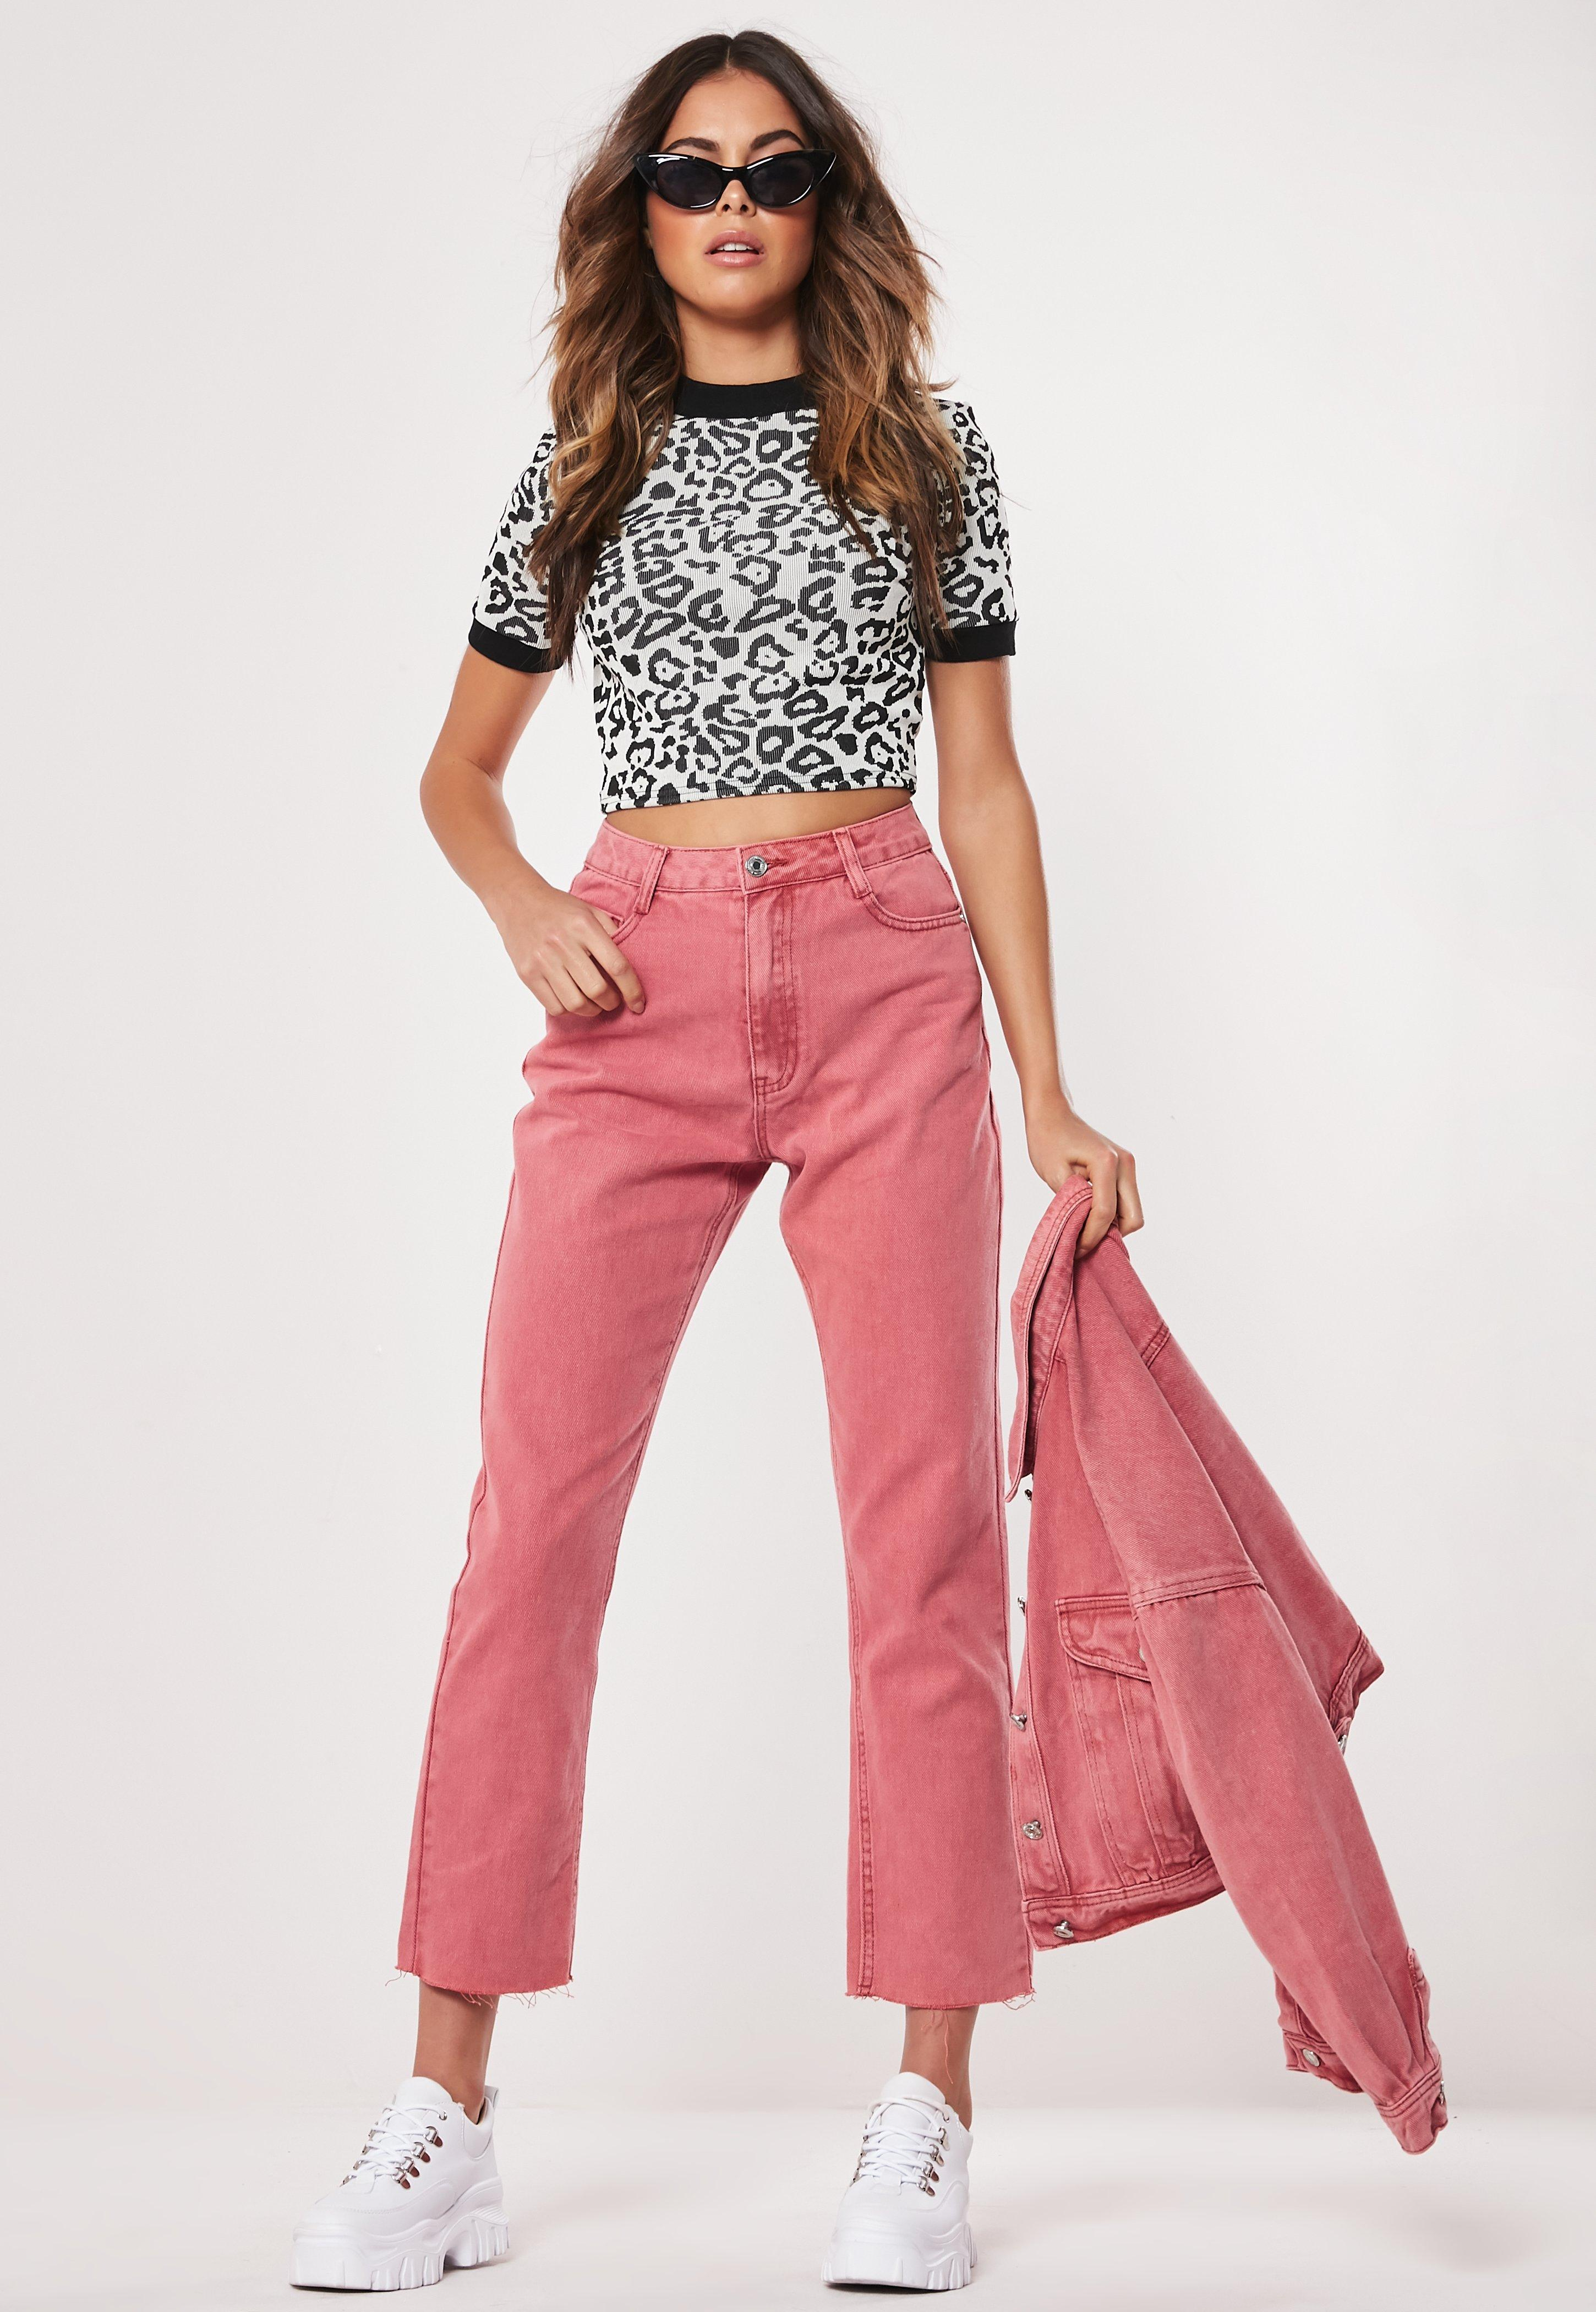 0cf686e01 Co-ordinates, Coords & Two Piece Outfits - Missguided